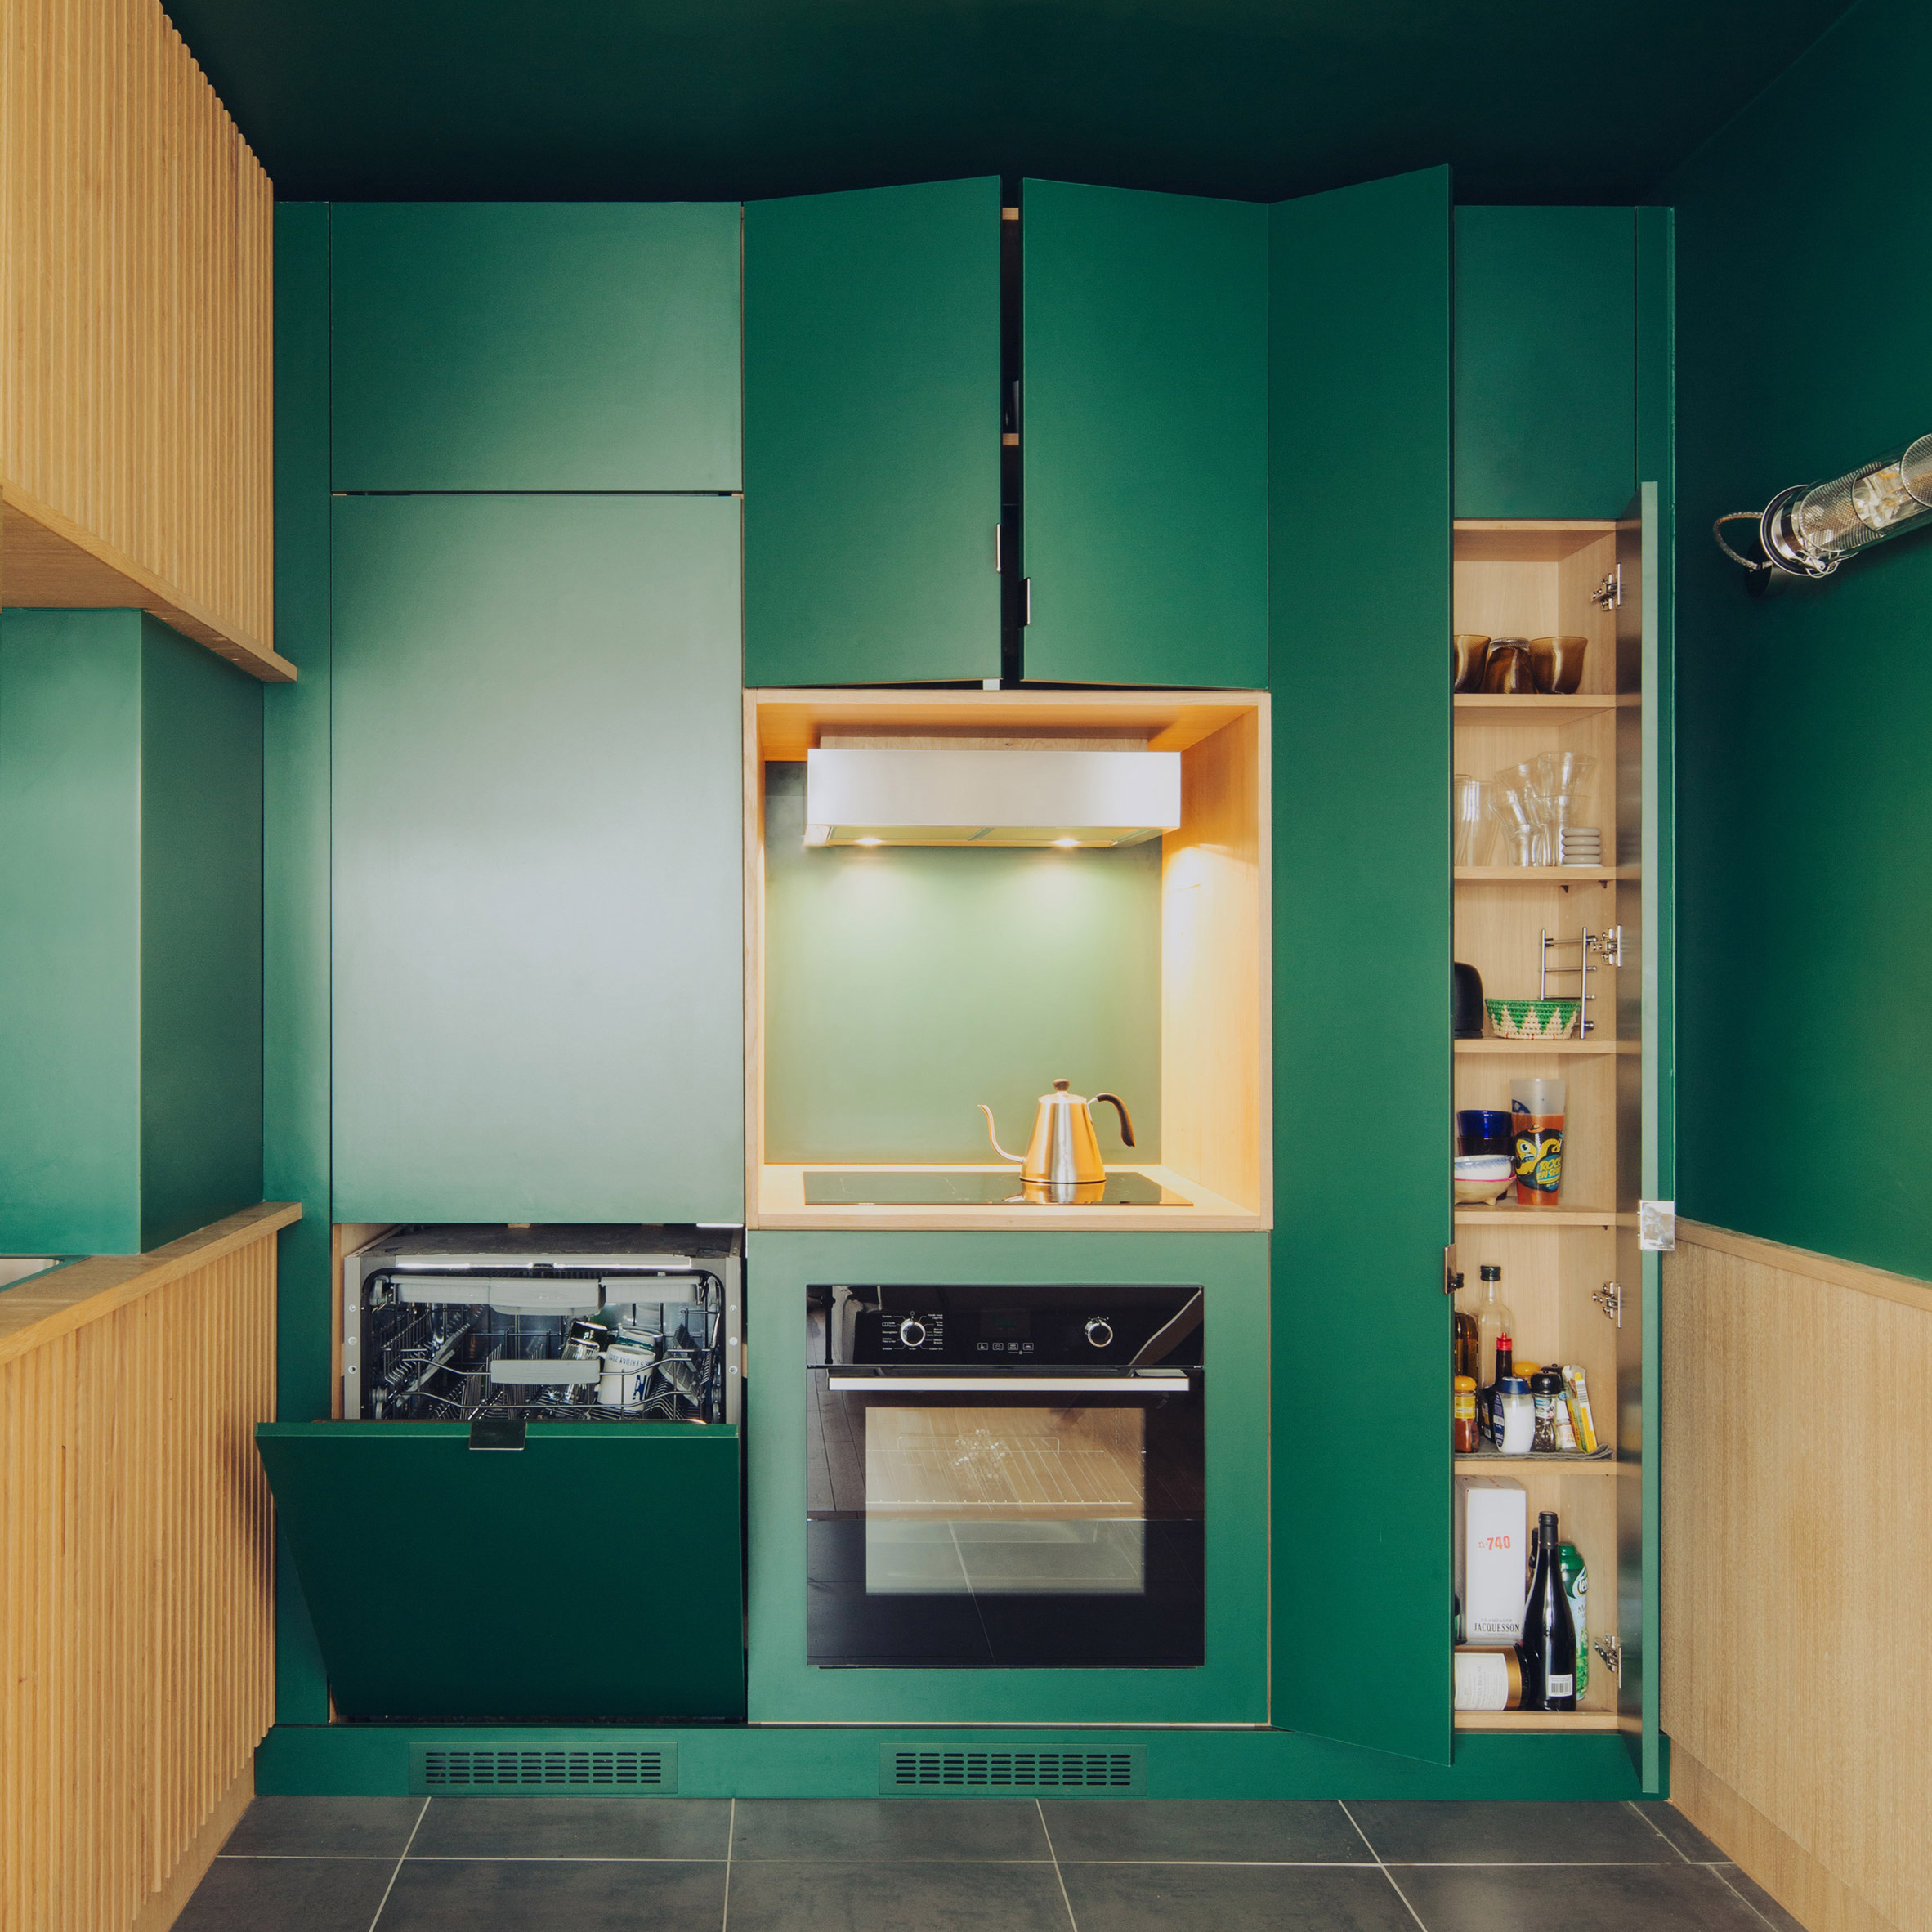 Green kitchen in Paris apartment